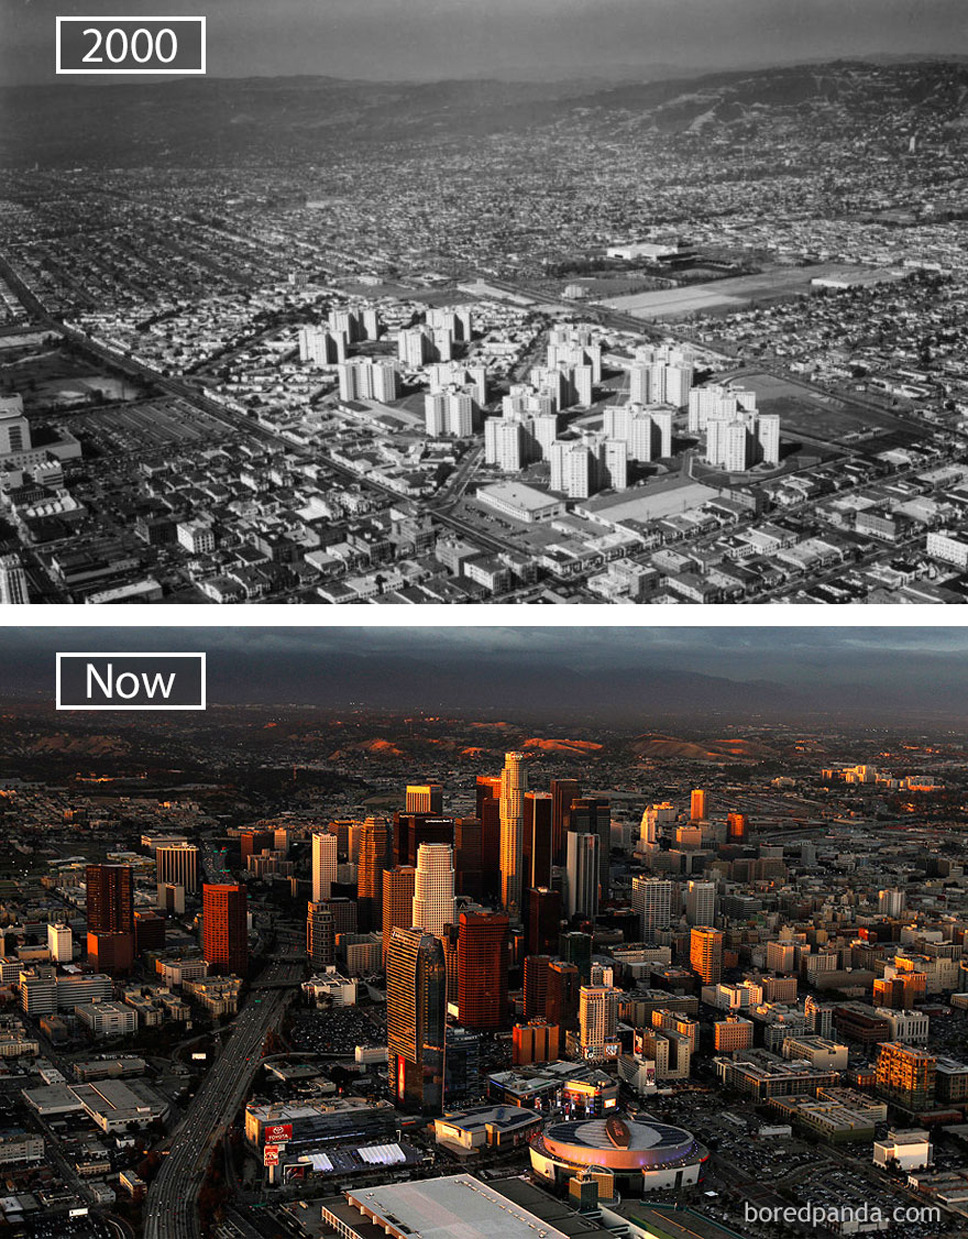 how-famous-city-changed-timelapse-evolution-before-after-29-577e02ddbdf35__880